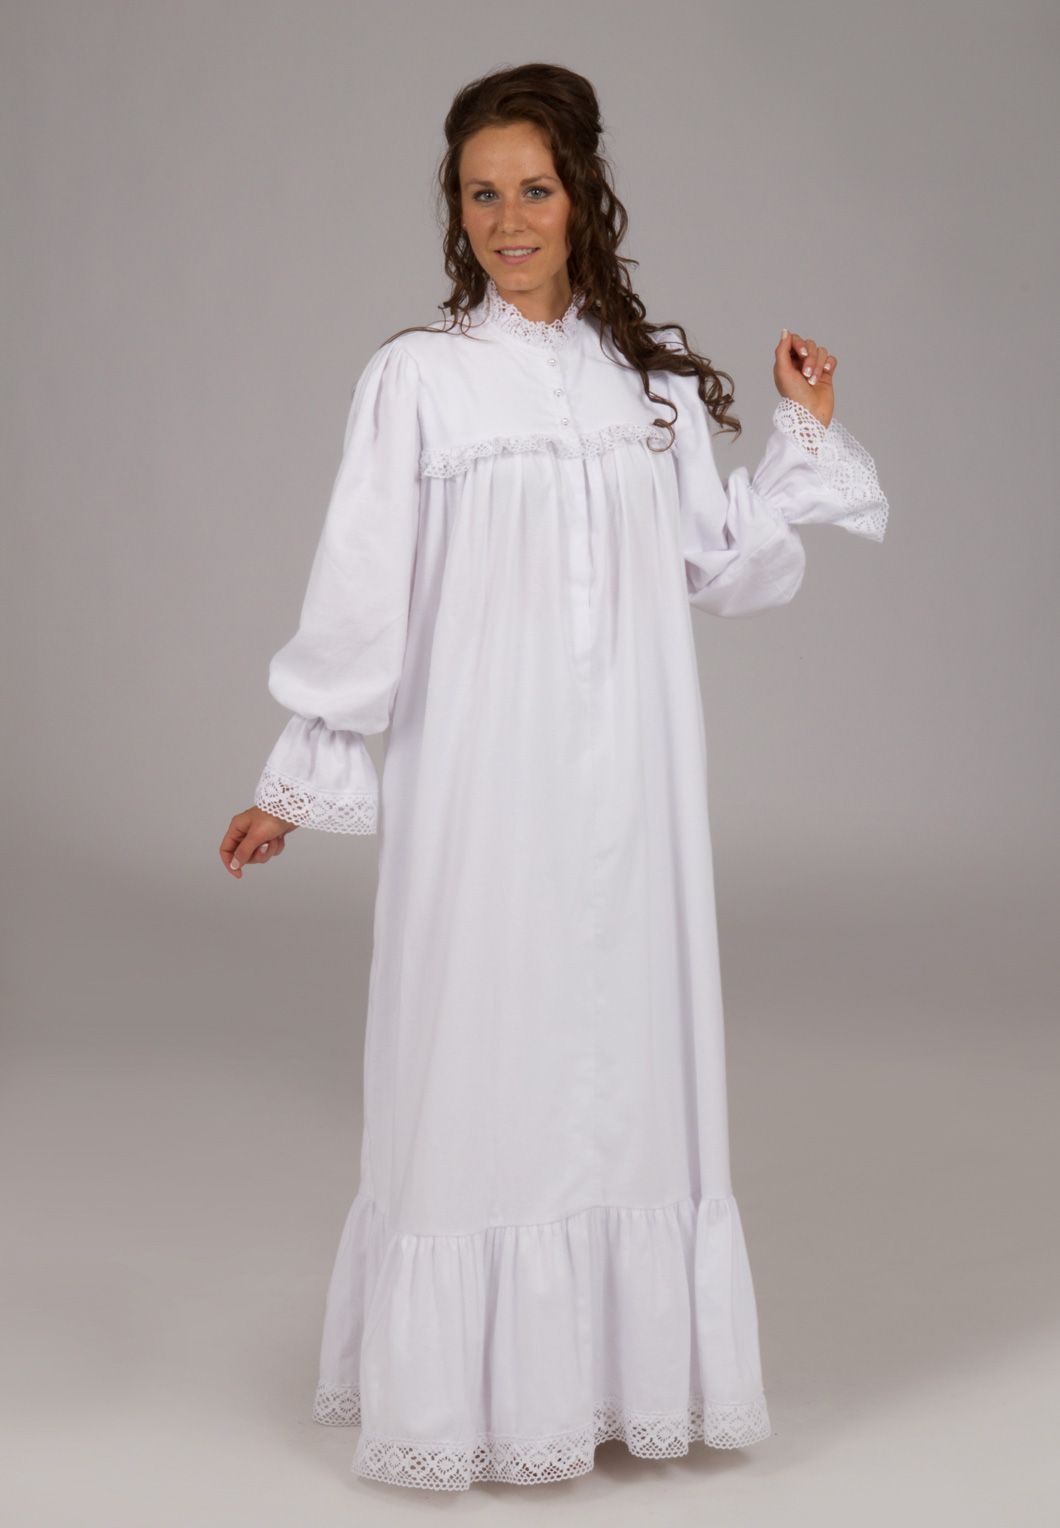 4b0215c74 Peek into the past with this item from Recollections. Flannel Nightgown